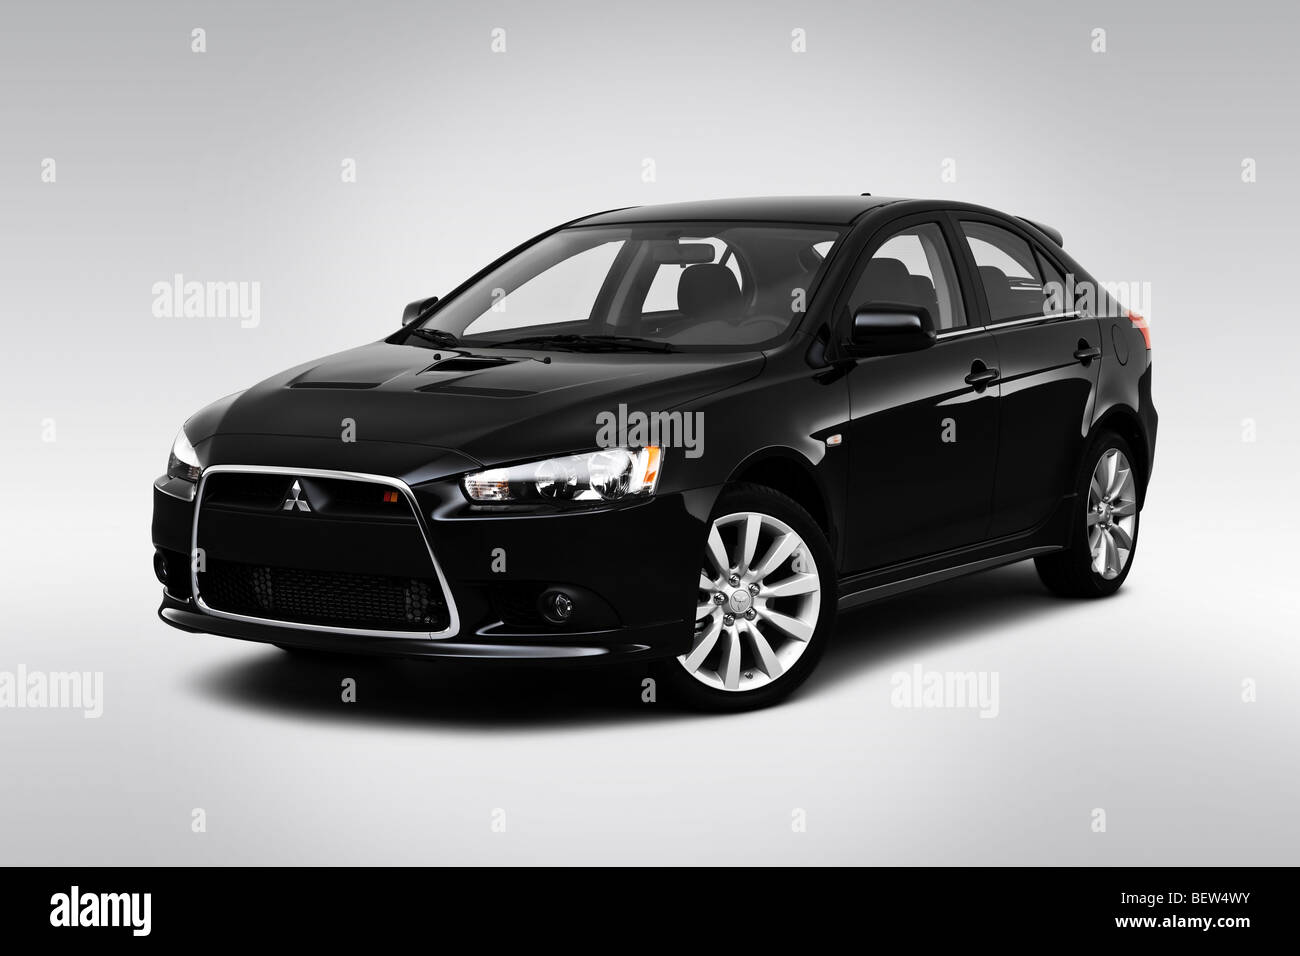 2010 mitsubishi lancer sportback ralliart in black front angle view stock photo 26368215 alamy. Black Bedroom Furniture Sets. Home Design Ideas